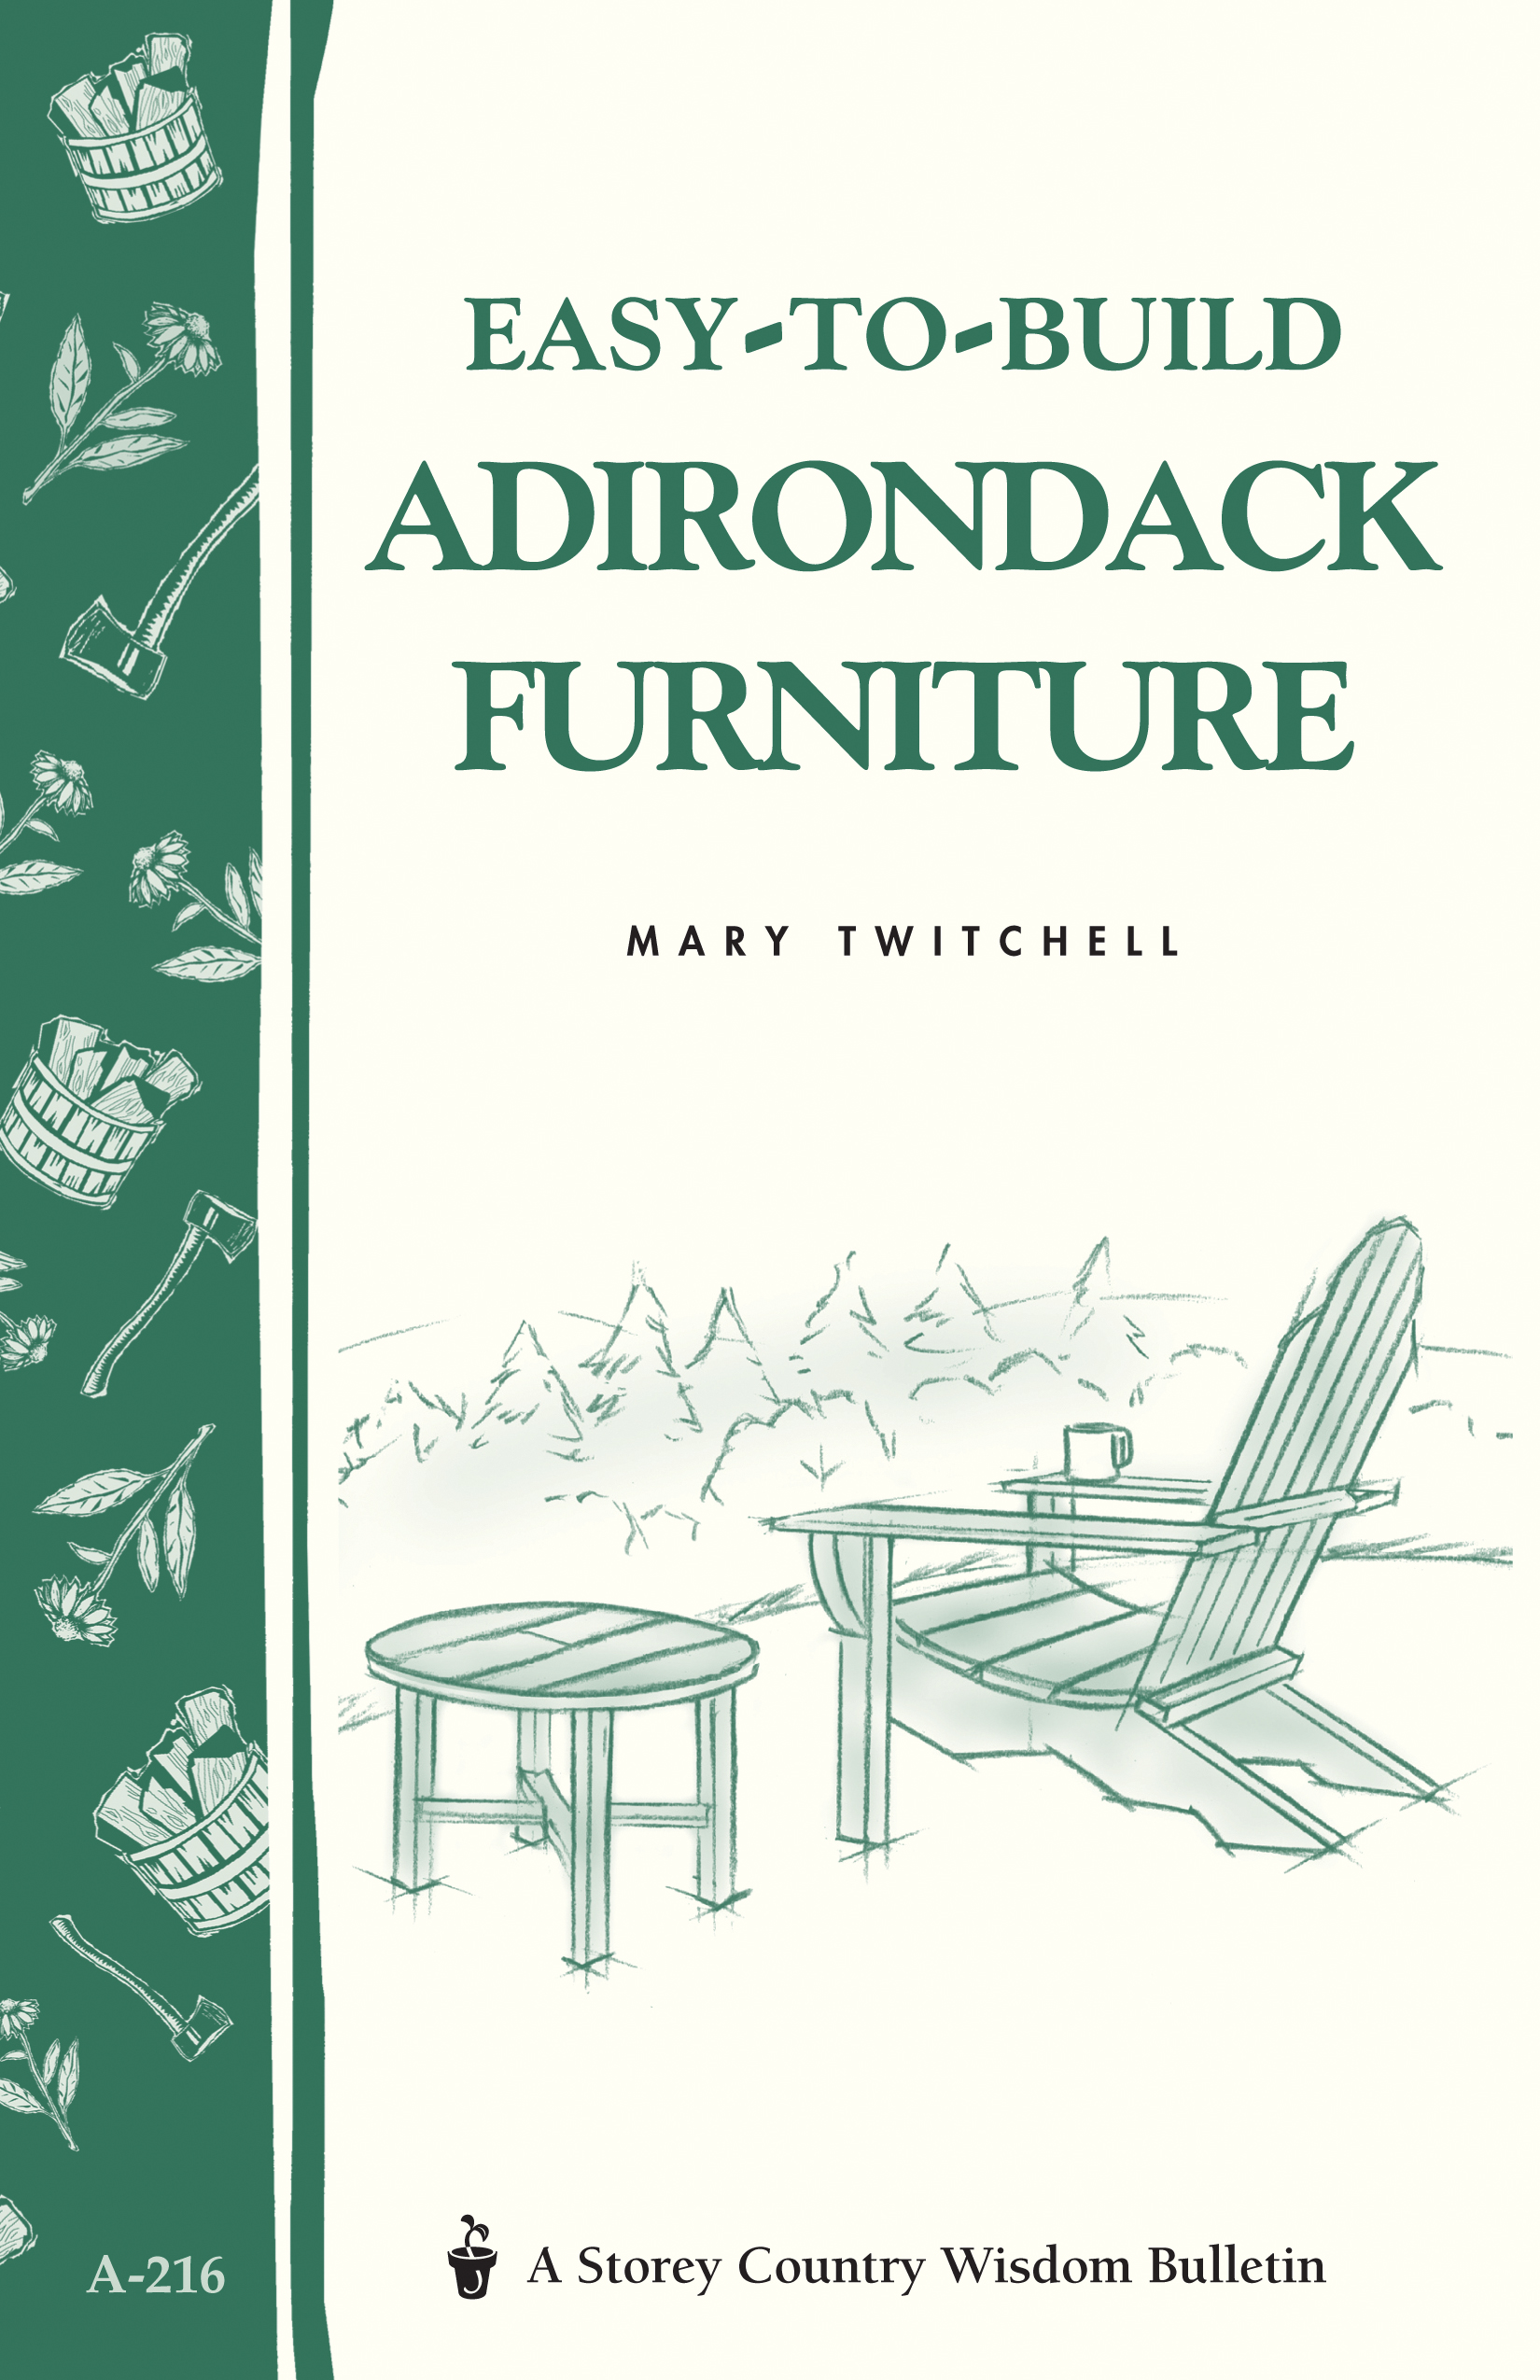 Easy-to-Build Adirondack Furniture Storey's Country Wisdom Bulletin A-216 - Mary Twitchell